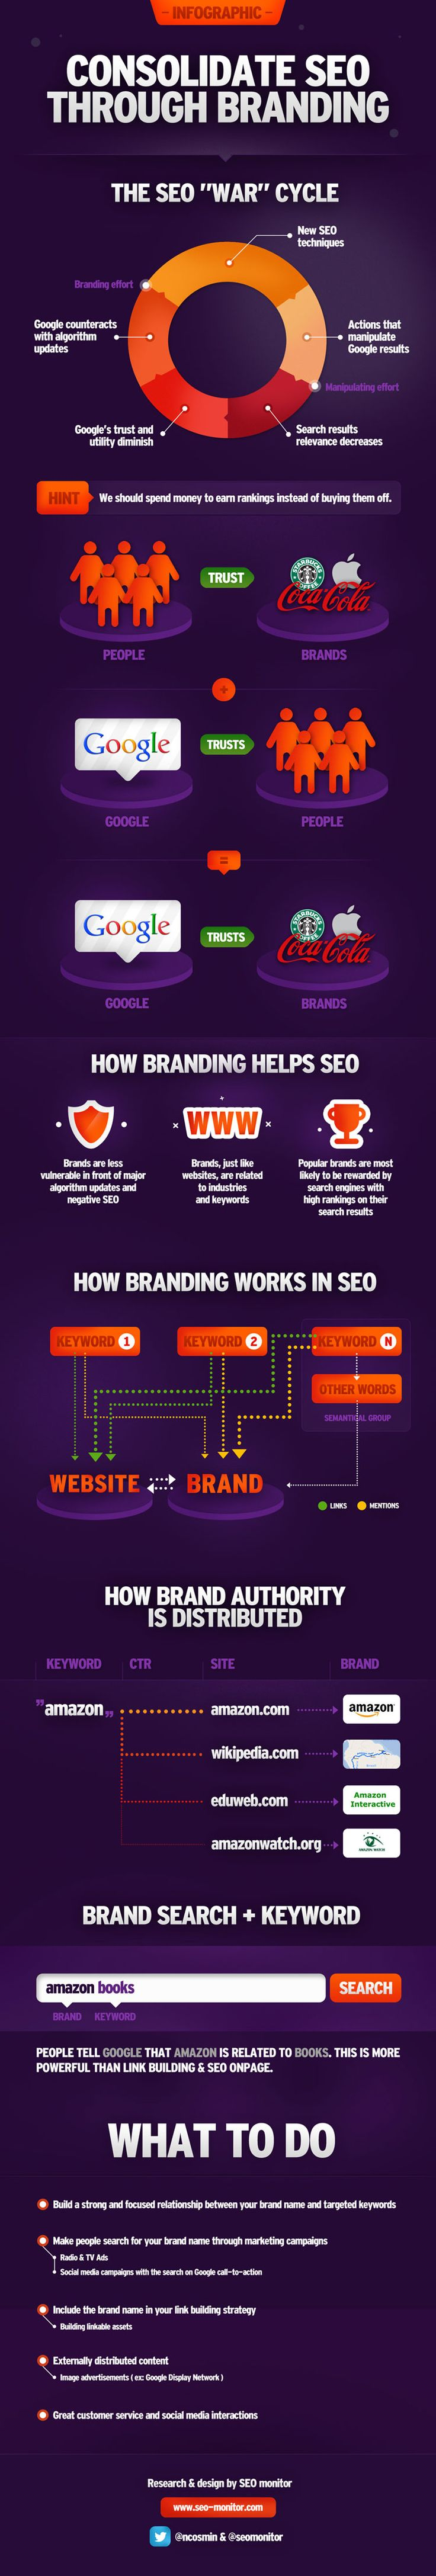 """""""The SEO """"War"""" cycle - Consolidate SEO through Branding""""Design Inspiration, Seo Consolidation, Online Marketing, Internet Marketing, Marketing Inphographic, Consolidation Seo, Seo Cycling, Brand Work, Campani Seo"""